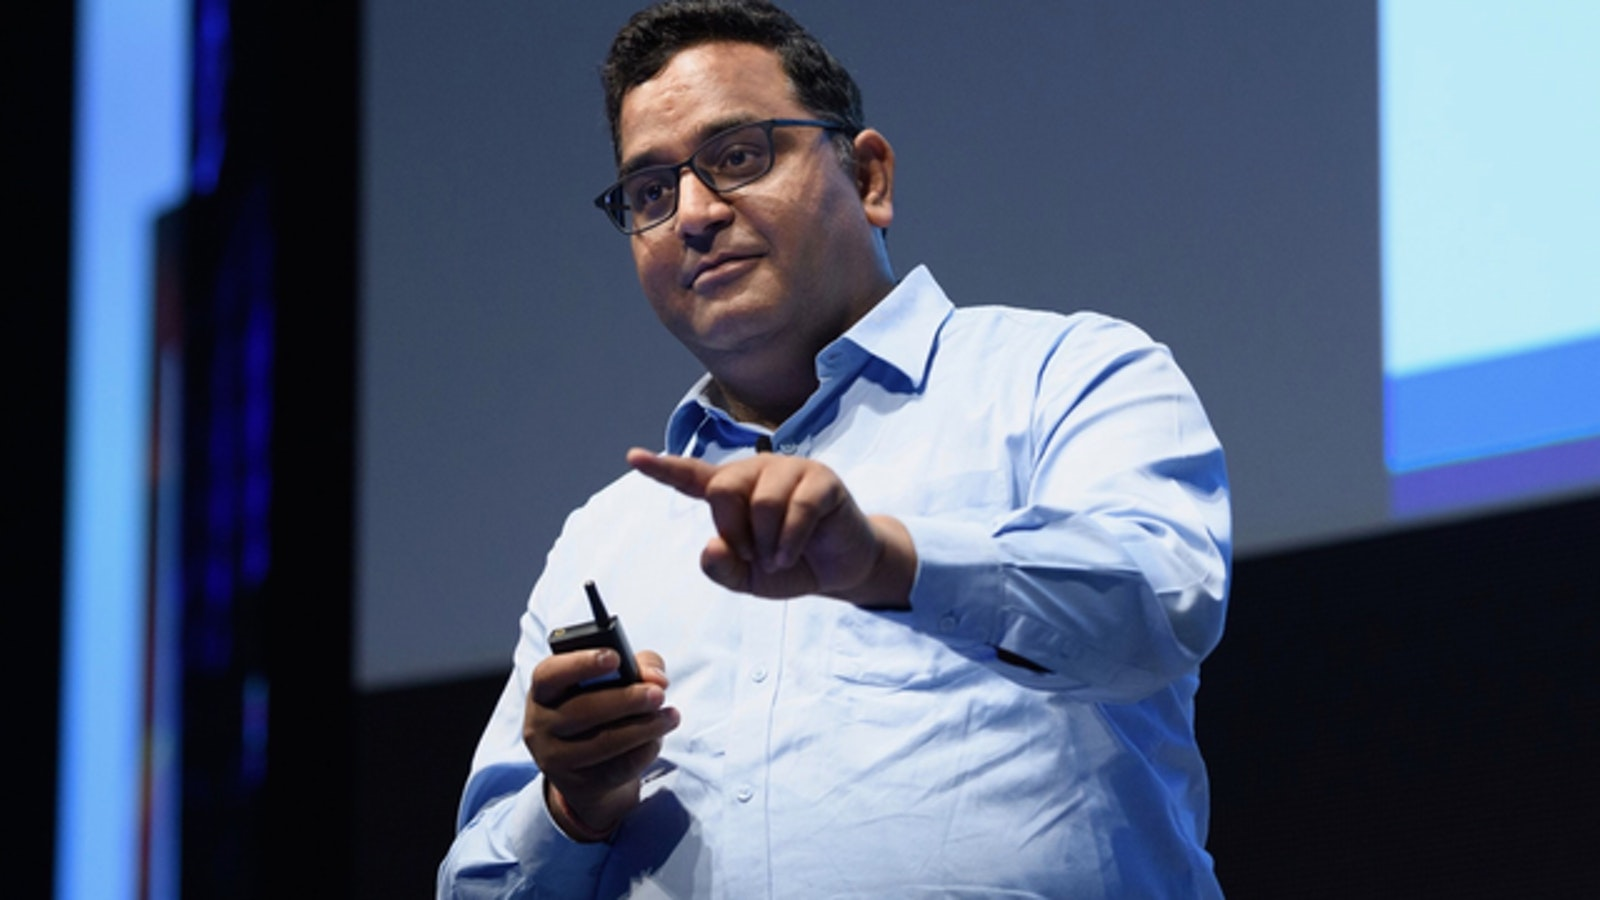 Paytm CEO Vijay Shekhar Sharma. Photo: Bloomberg